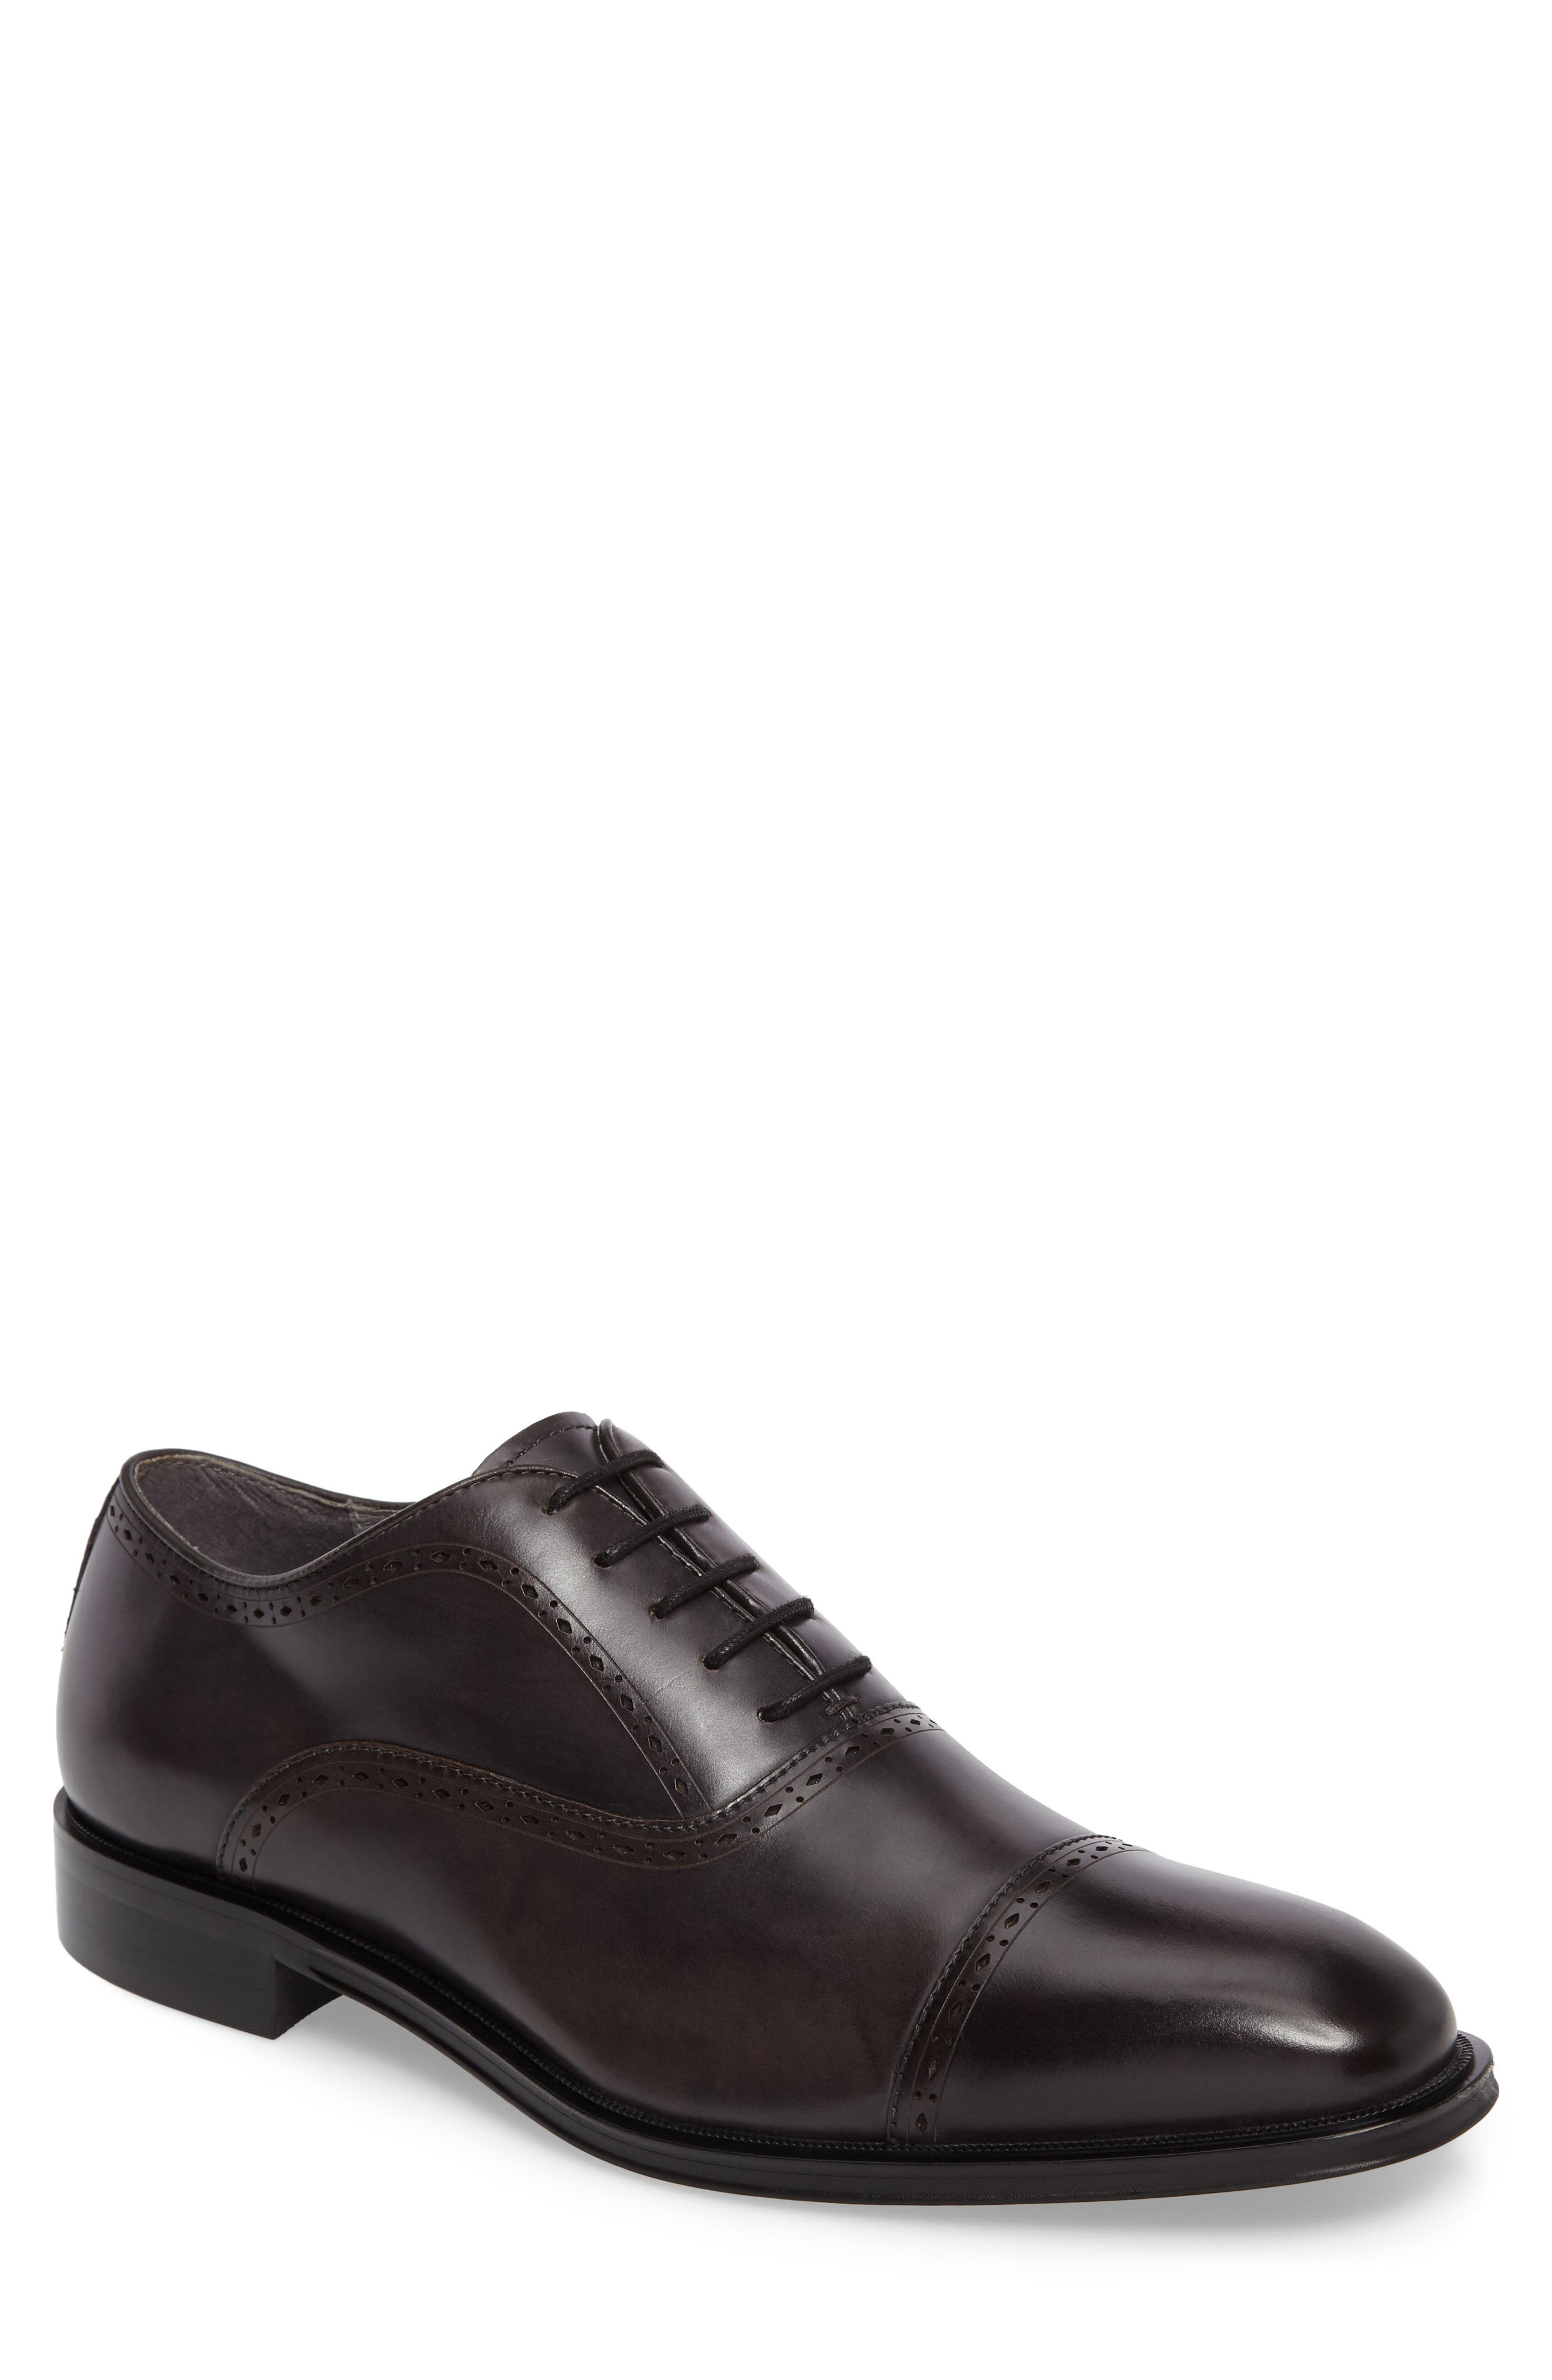 Kenneth Cole New York Design 10221 Cap Toe Oxford (Men)